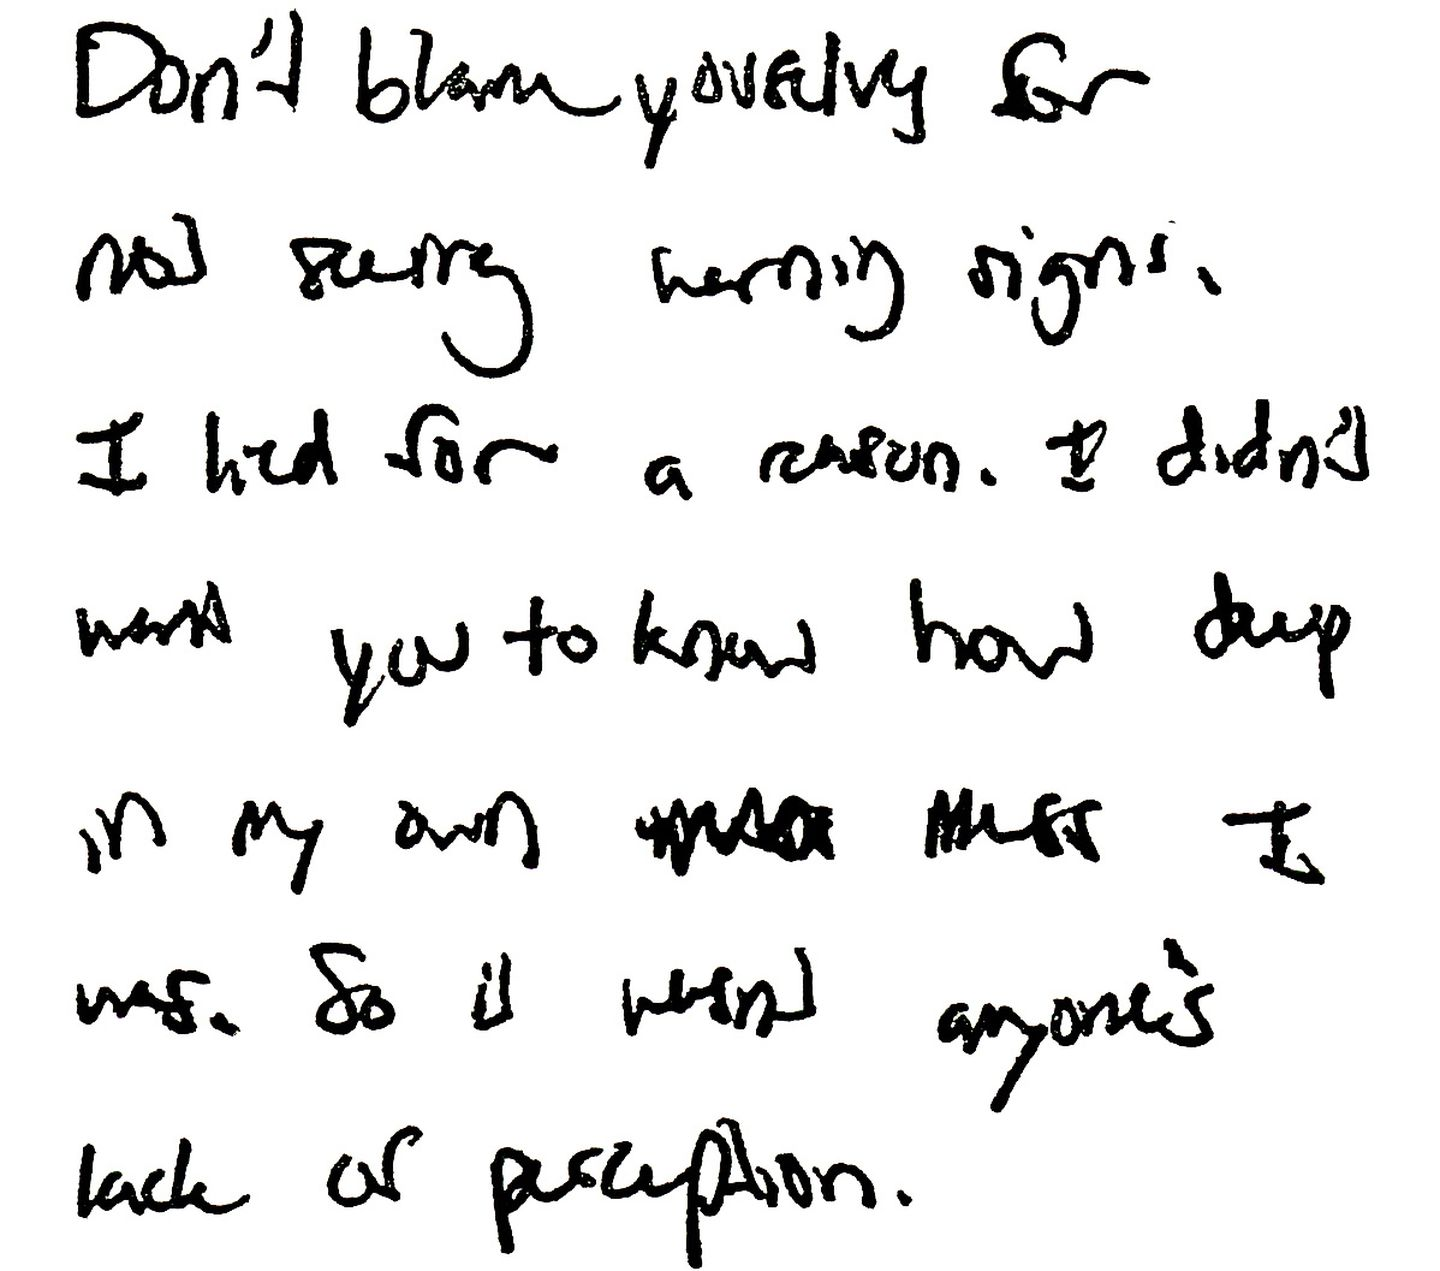 A page from Alexandra's, modified for legibility. Among her final entries, she told others not to blame themselves for missing any signs of her unhappiness.